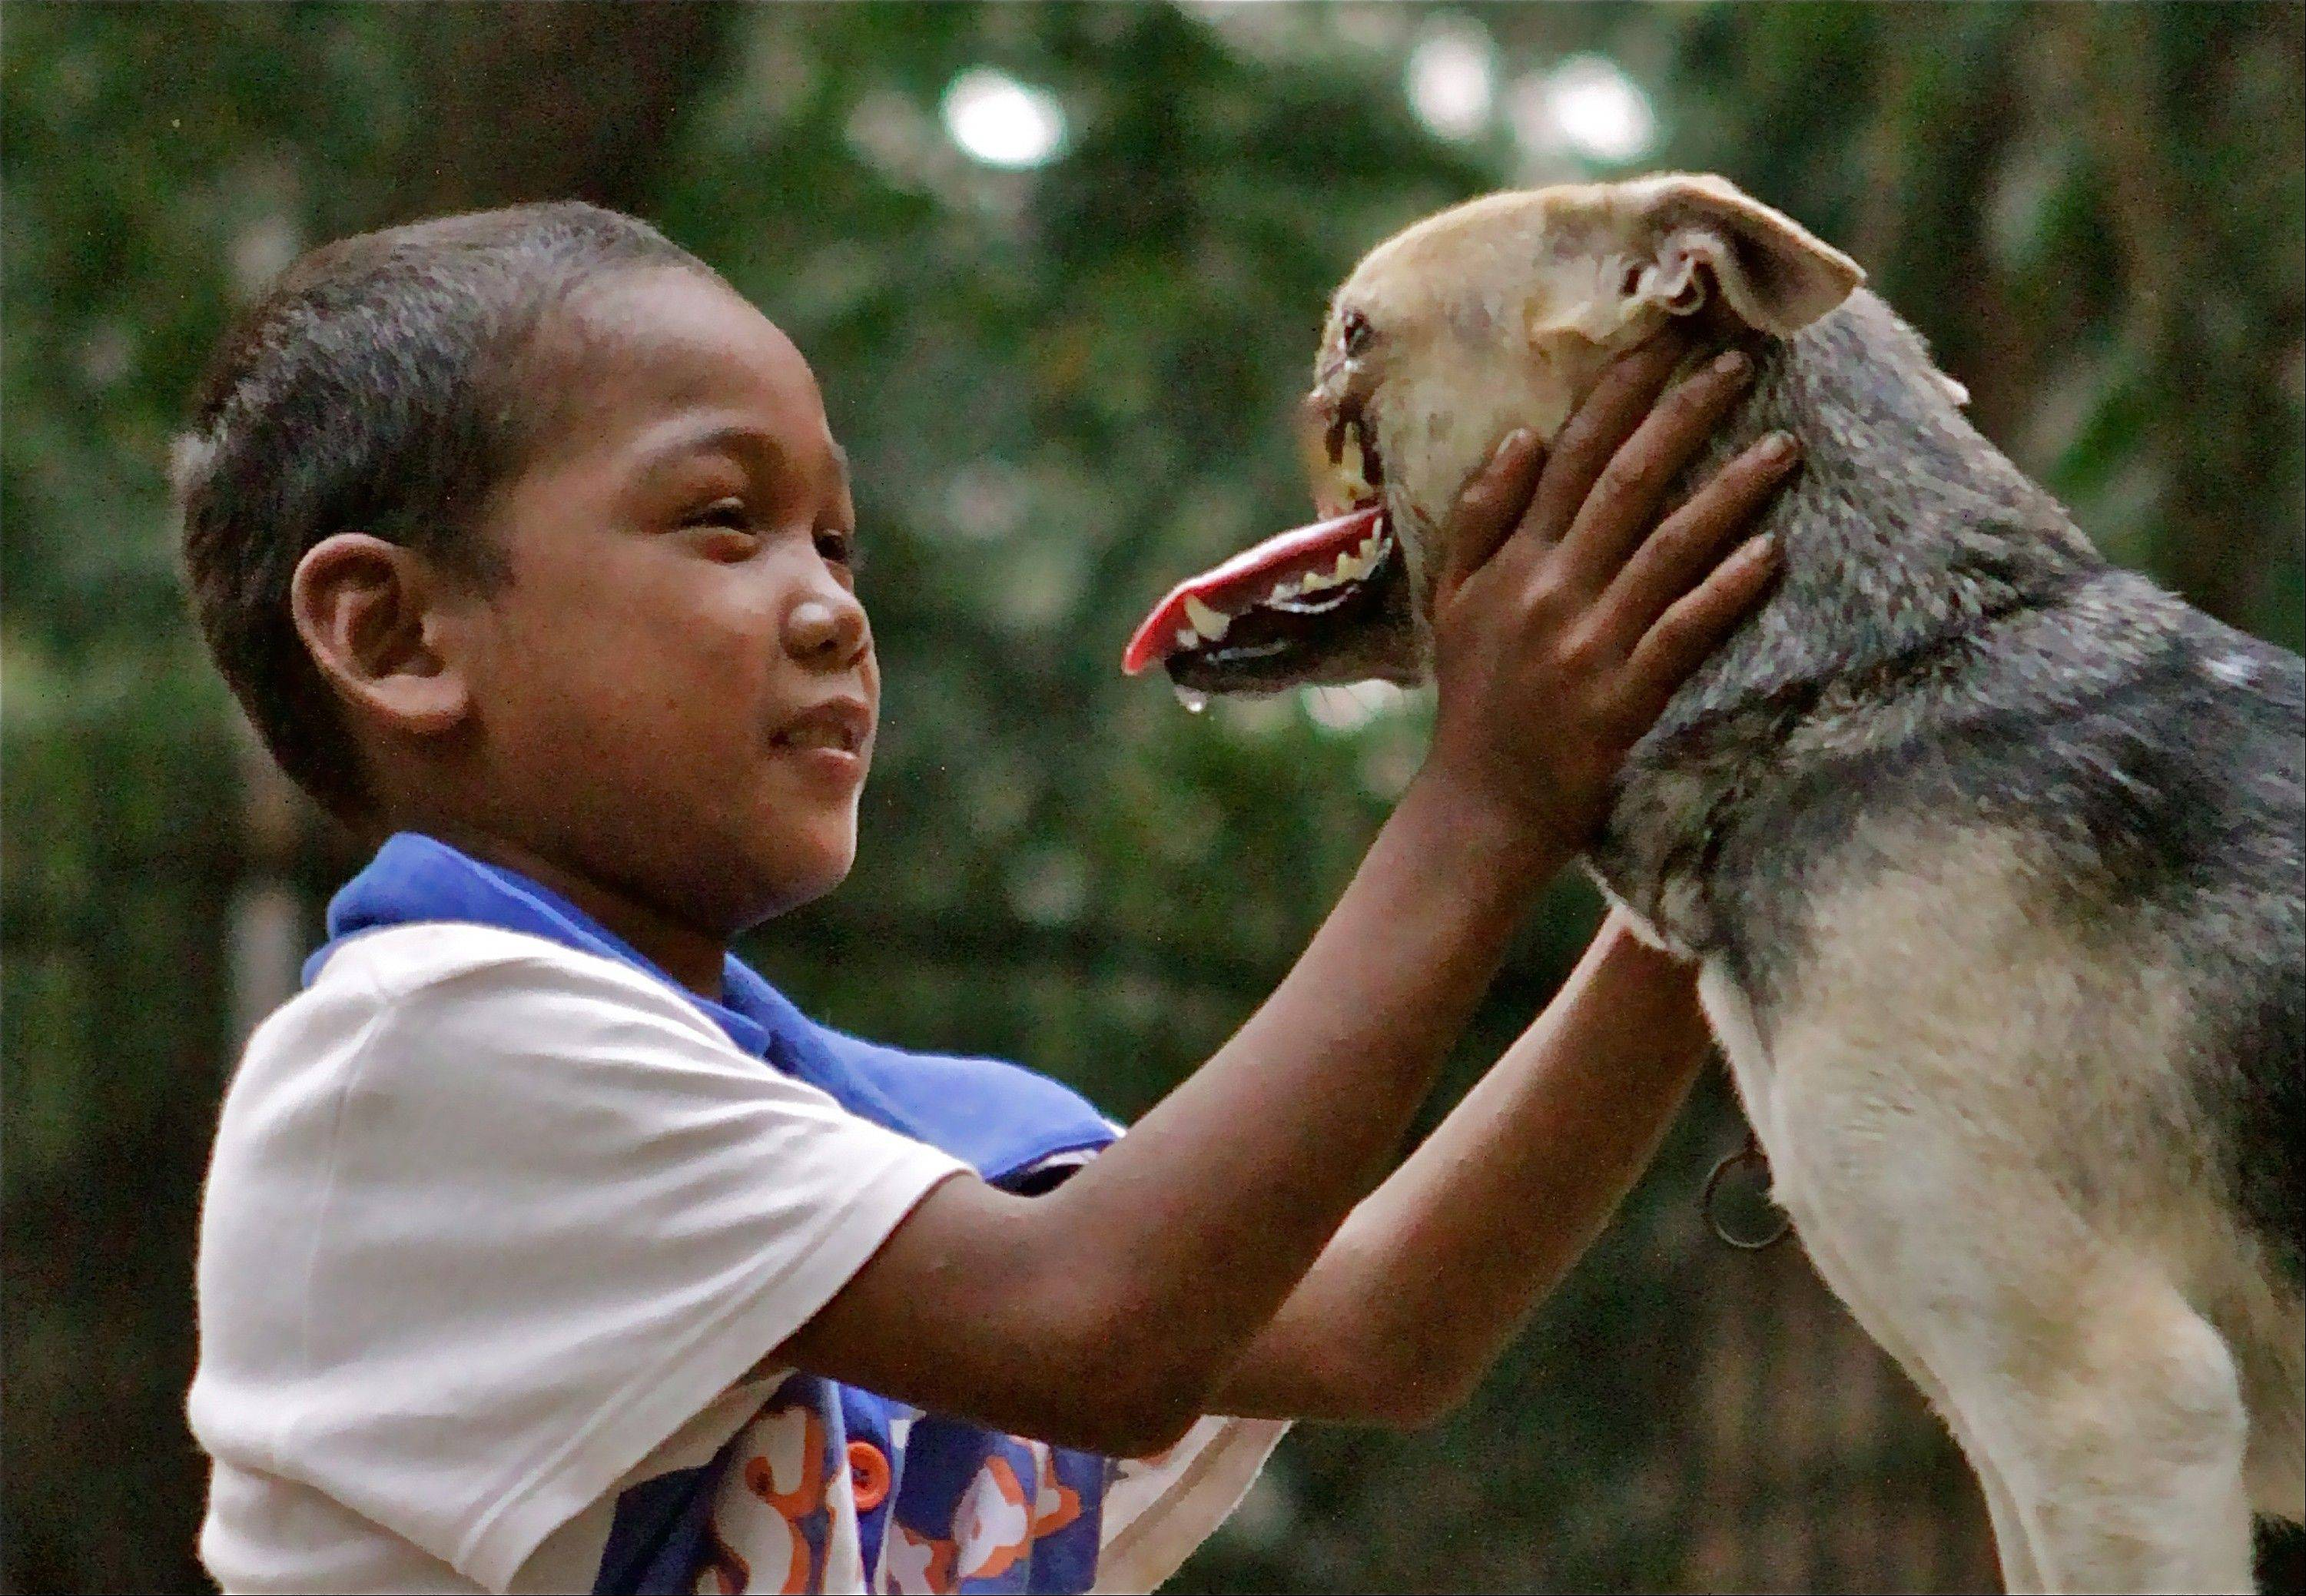 A Bunggal family member plays with Kabang the dog in the Philippines. A veterinarian at the University of California, Davis, has some good news about a dog from the Philippines who became an international hero after sacrificing its snout to save two young girls. Veterinarian Gina Davis says the dog named Kabang appears to have beaten the cancer it was suffering from.